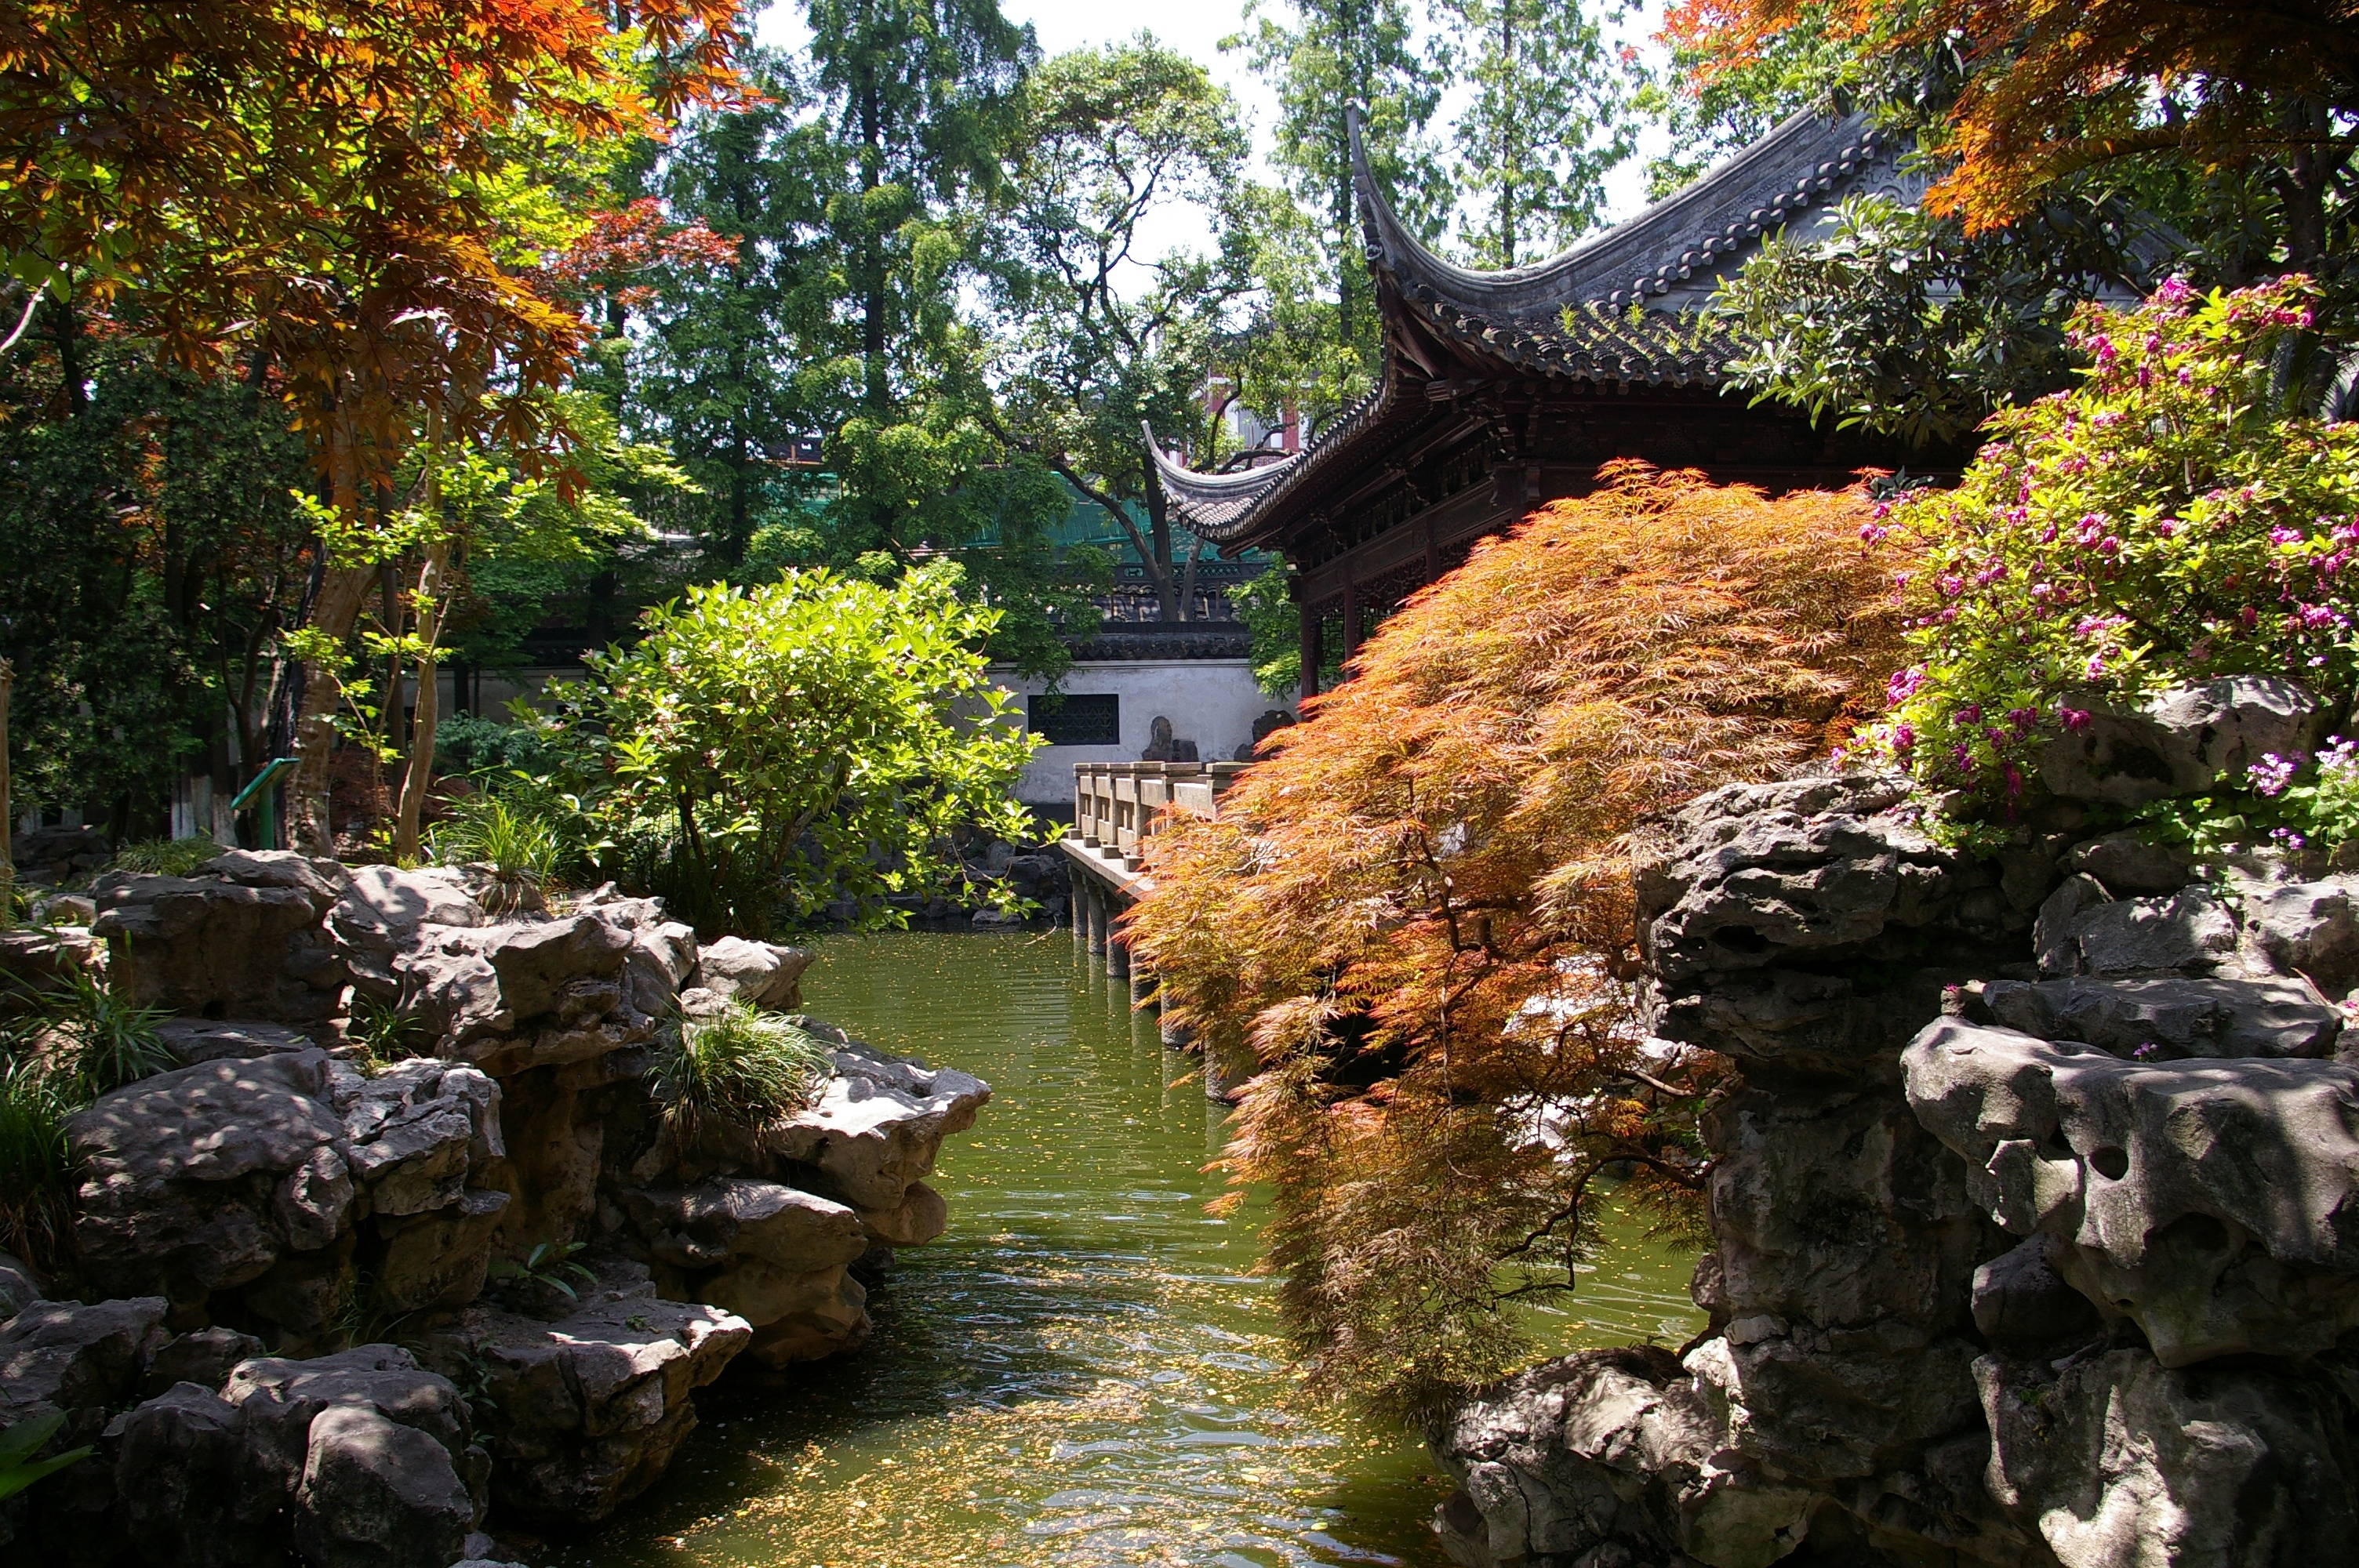 Landscape design history of china for Chinese garden design